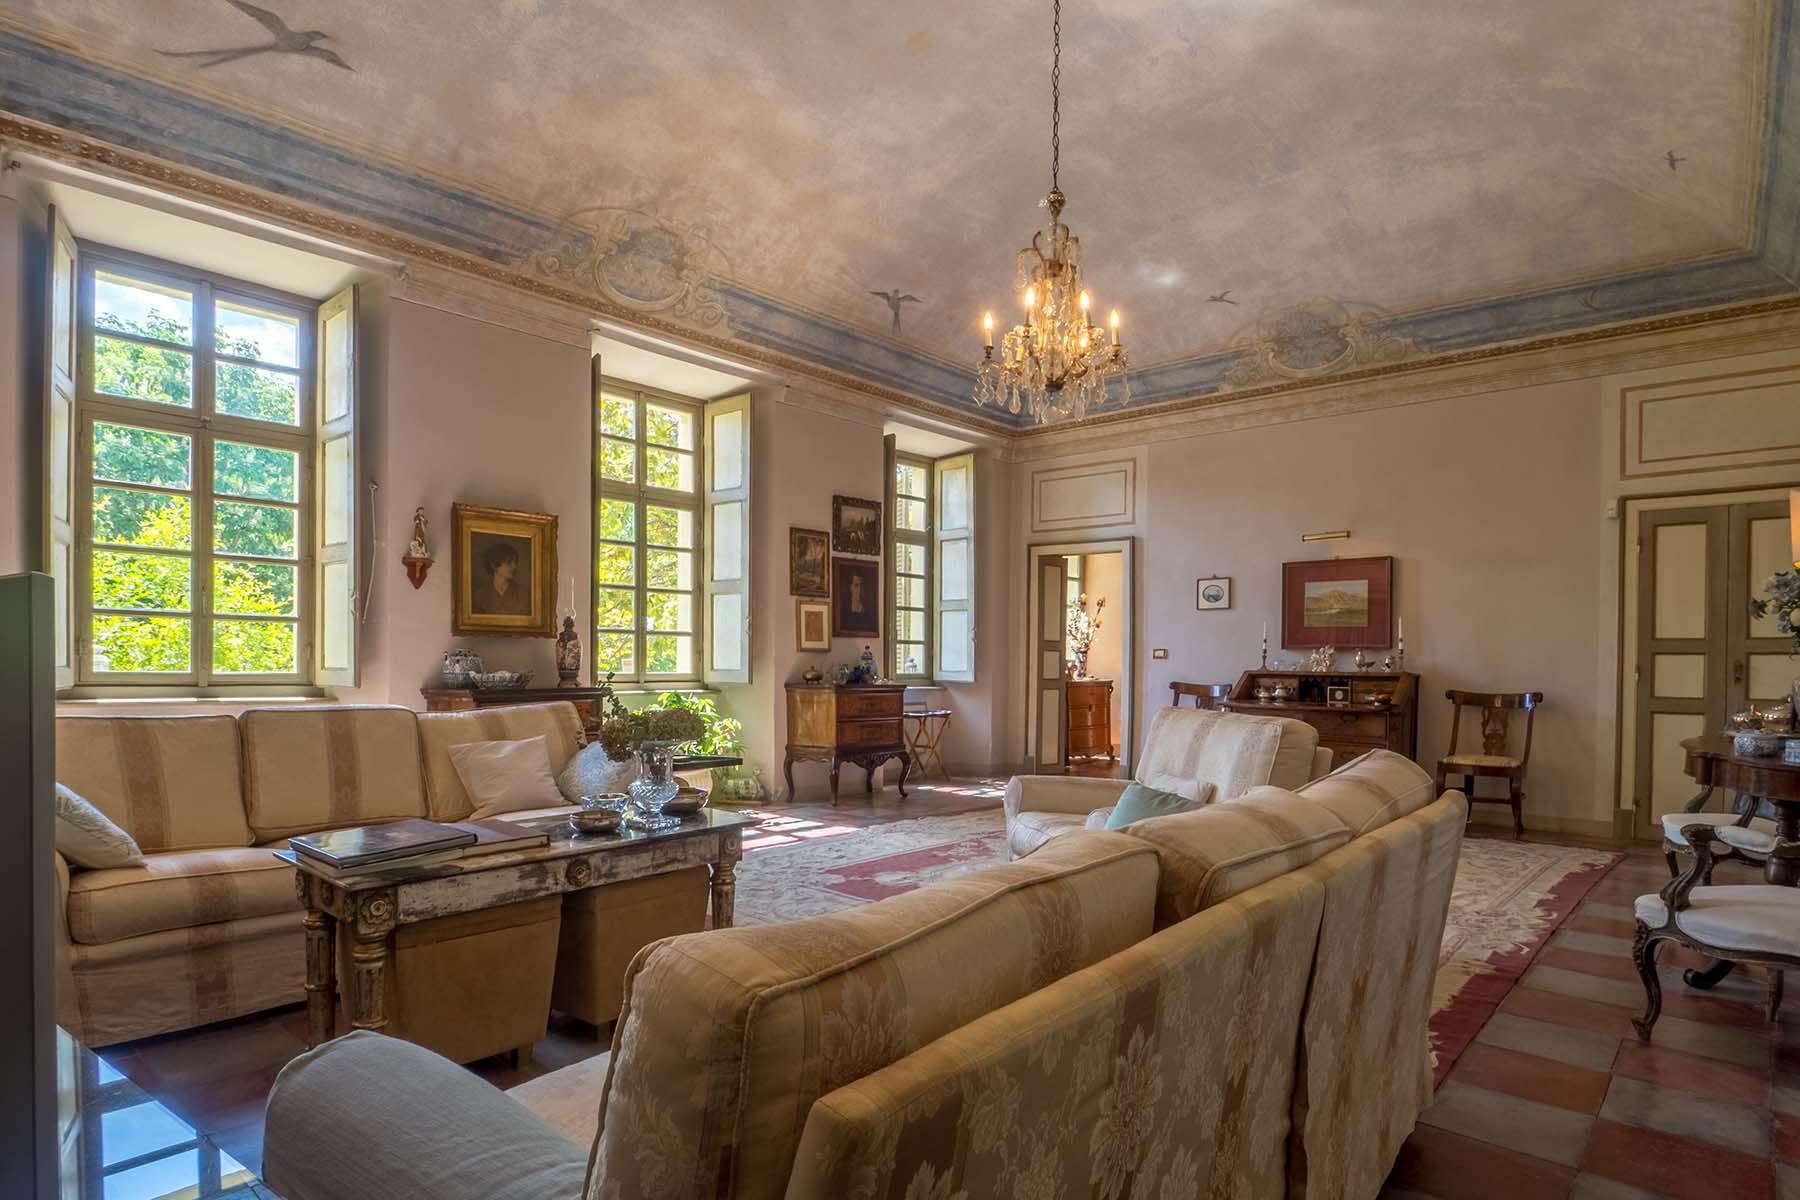 Enchanting historical villa in the heart of the Monferrato region - 8